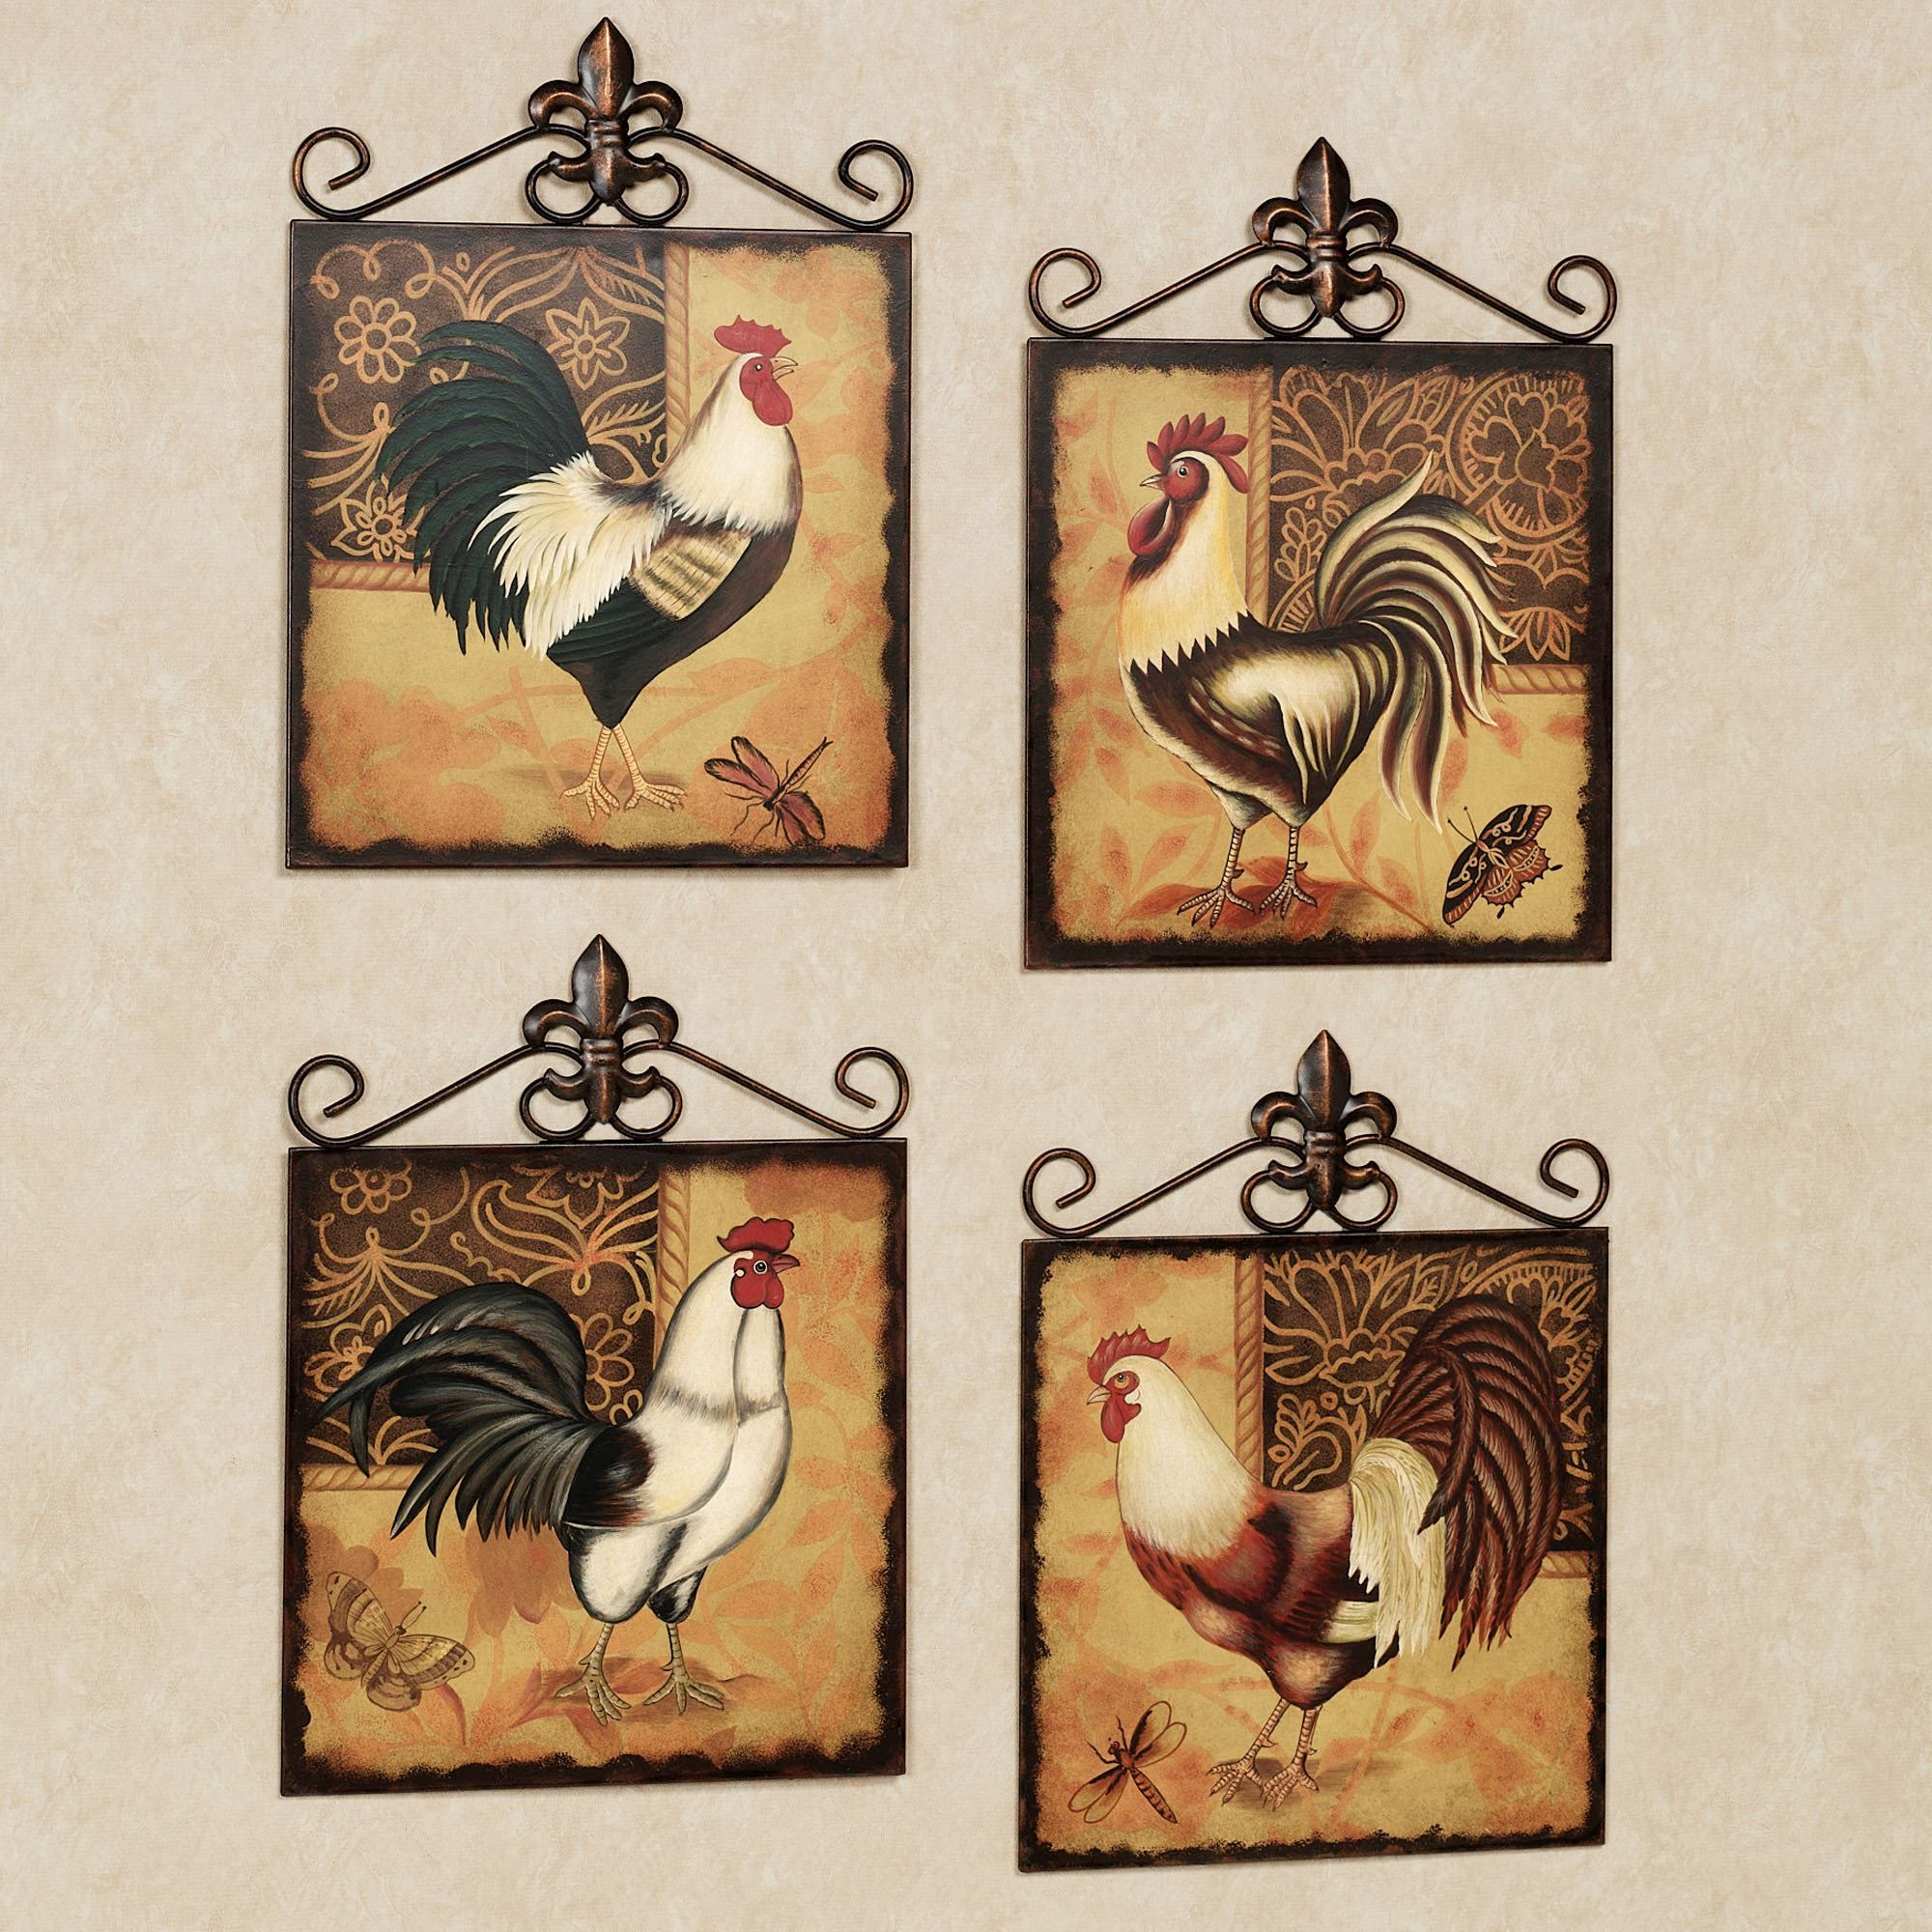 Images Roosters Pinterest Rooster Decor Pinterest Rooster Kitchen